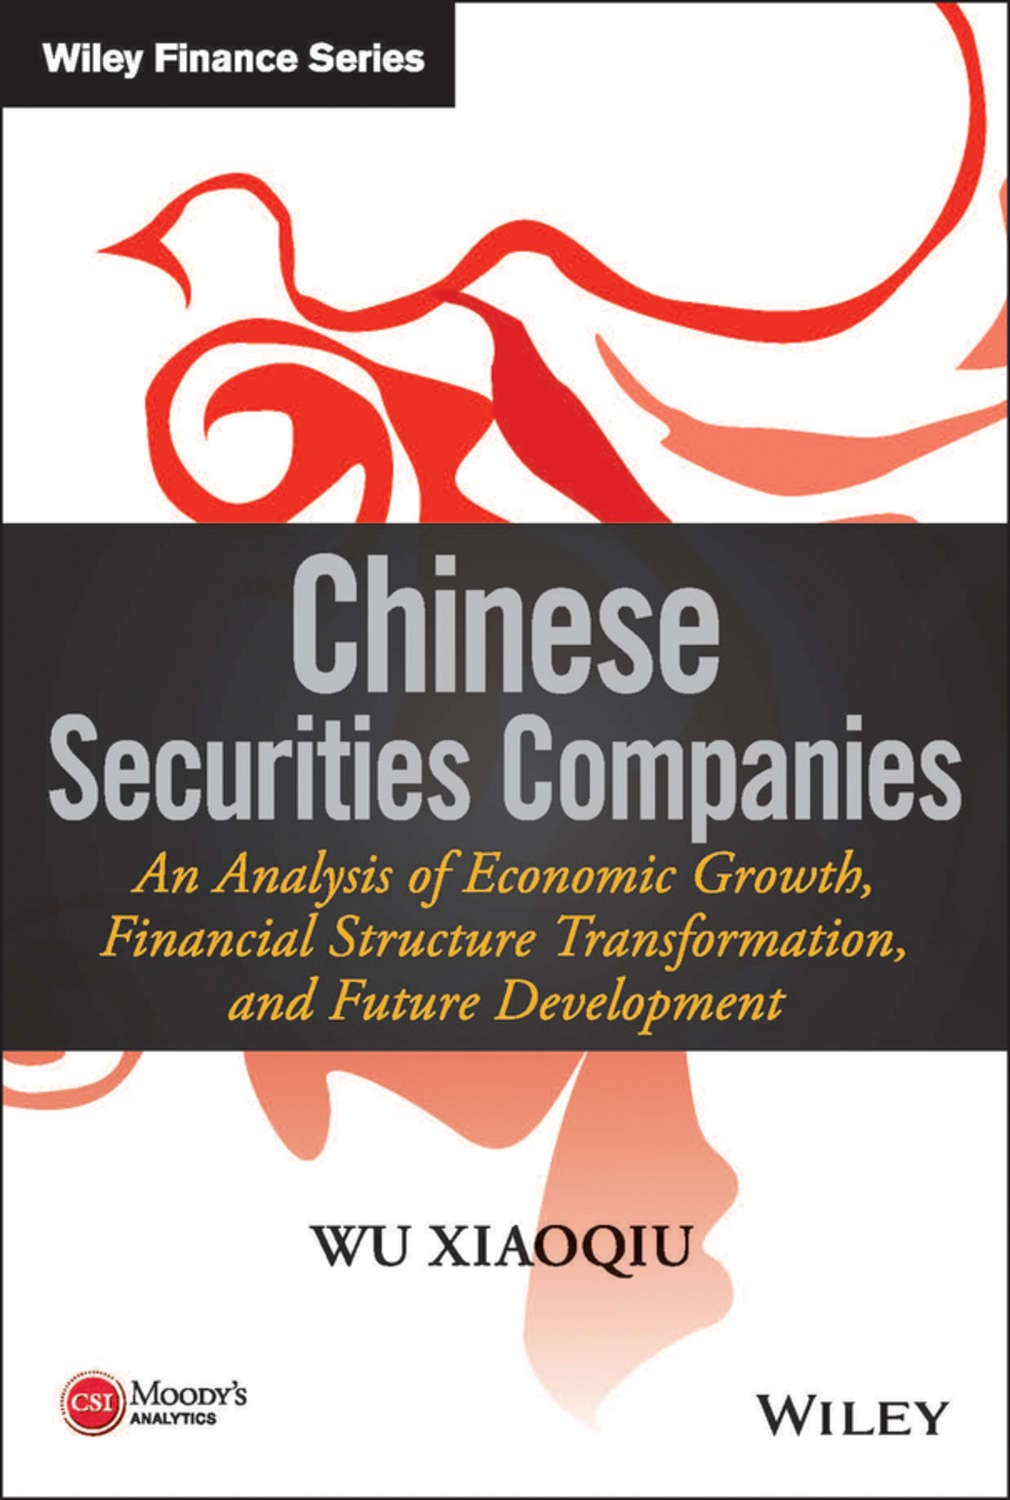 an analysis of the chinese economy culture and society China is the leading and quickly growing country, which has strong economy and it has huge number of the gdp rate is adding more and more values to the society and it is also increasing the china has to face problems as it does not have safe online payment system, so the chinese buyers face.